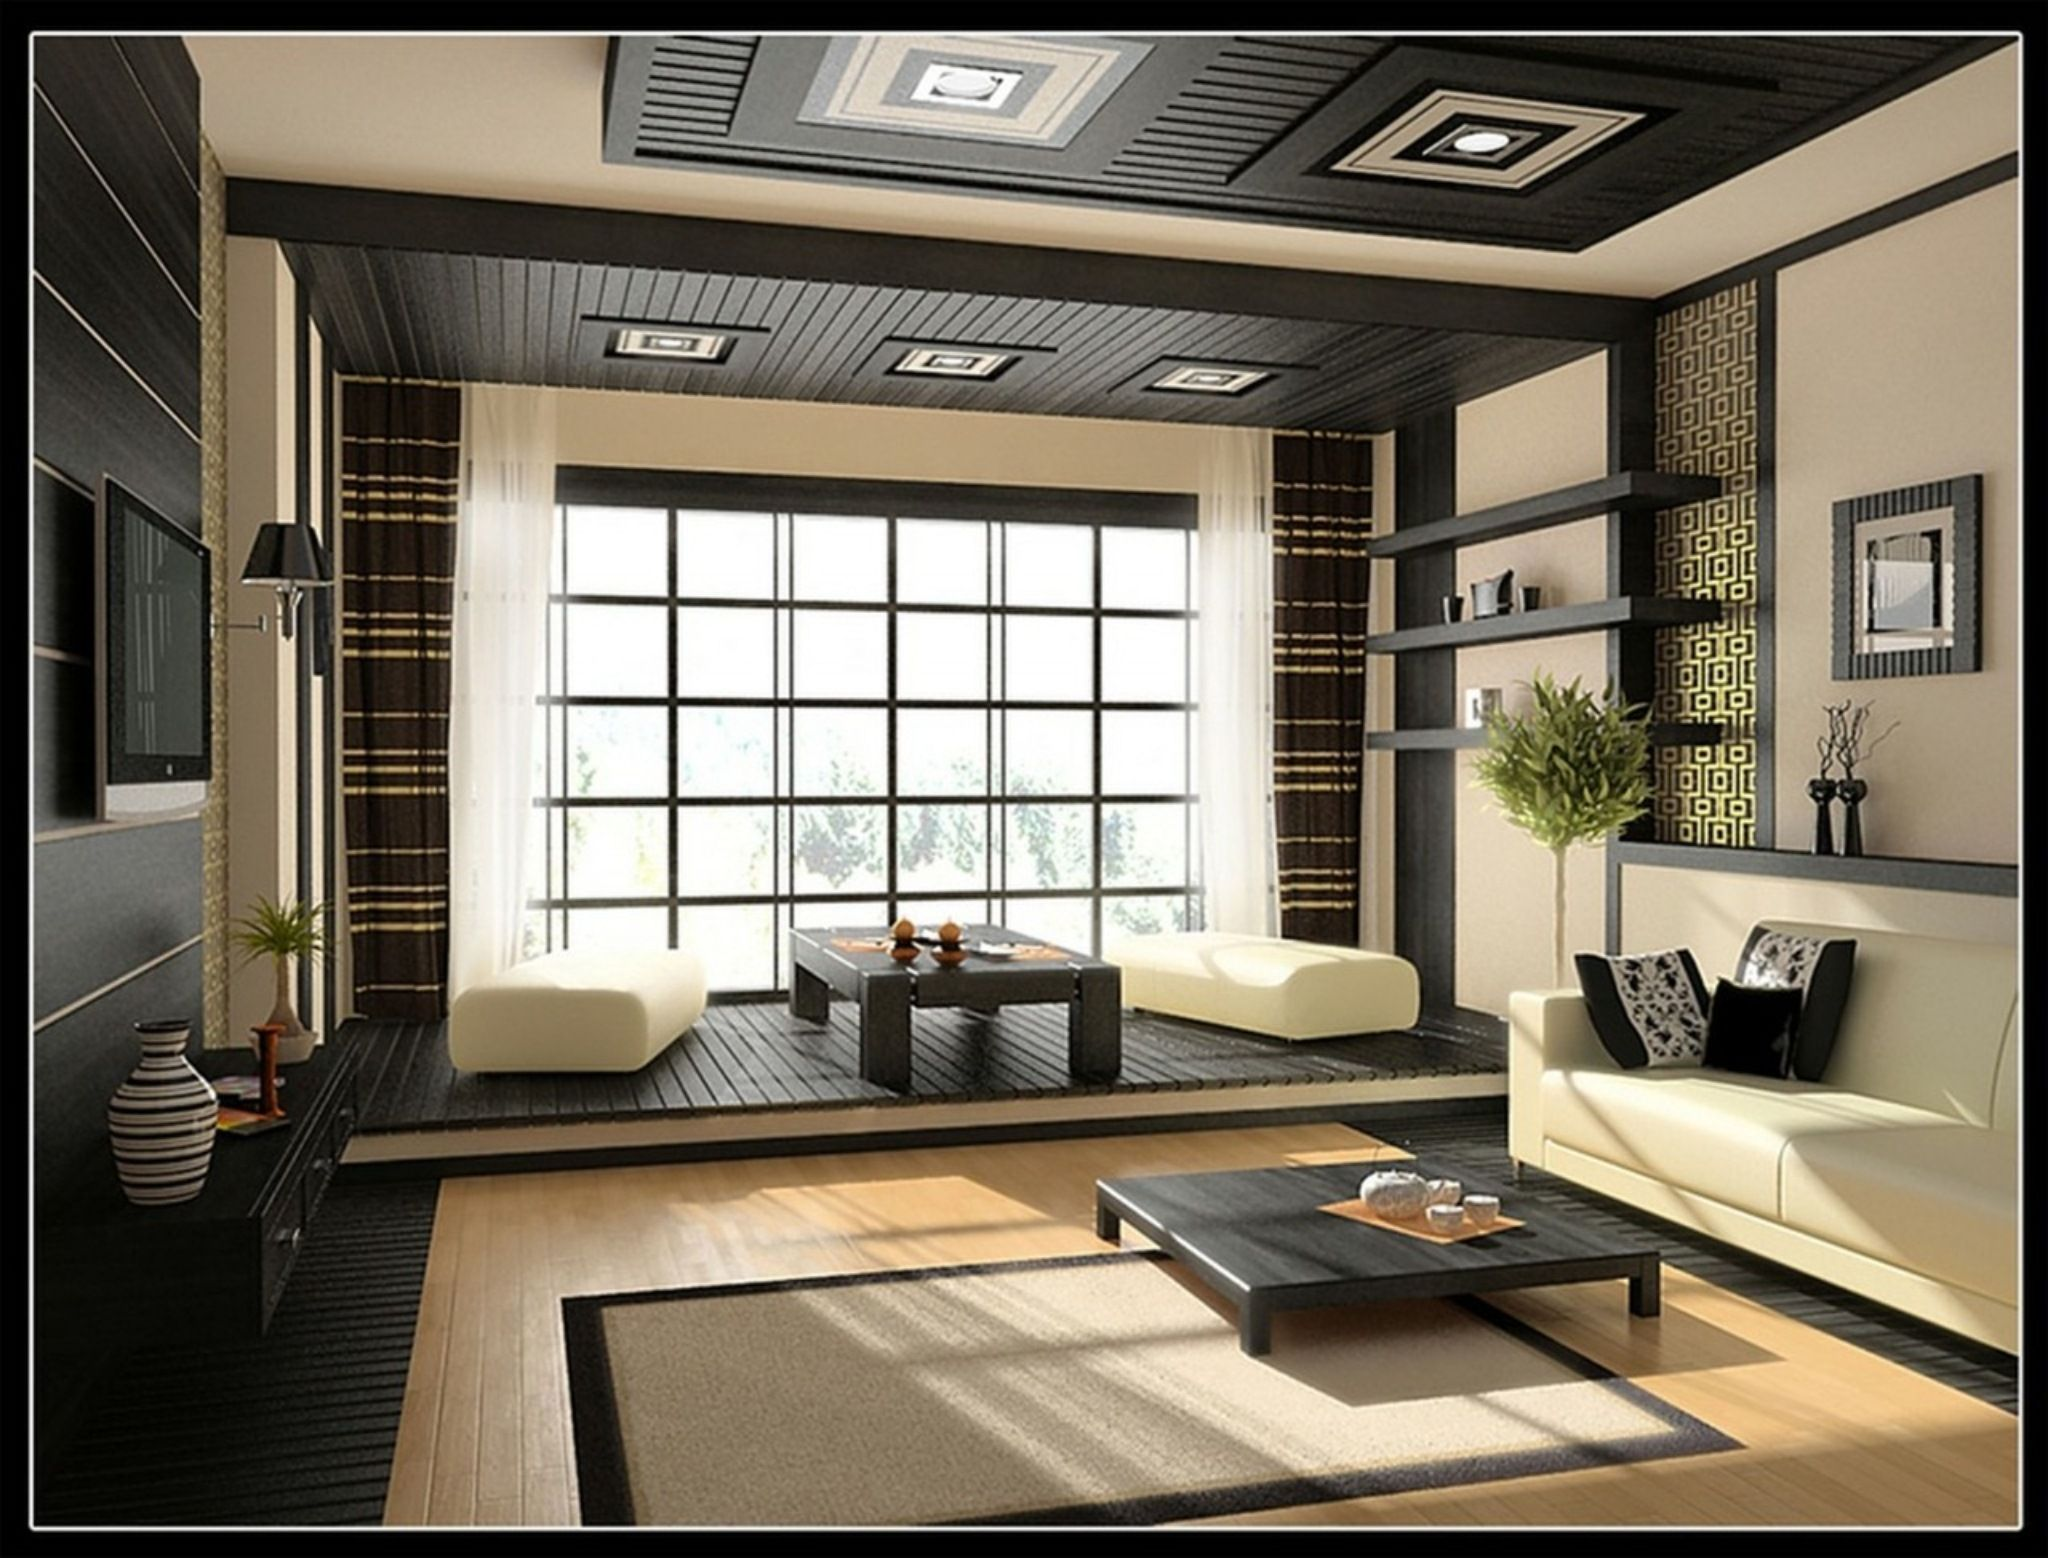 Color Schemes For House Interior japan interior design - google search | like & saved | pinterest